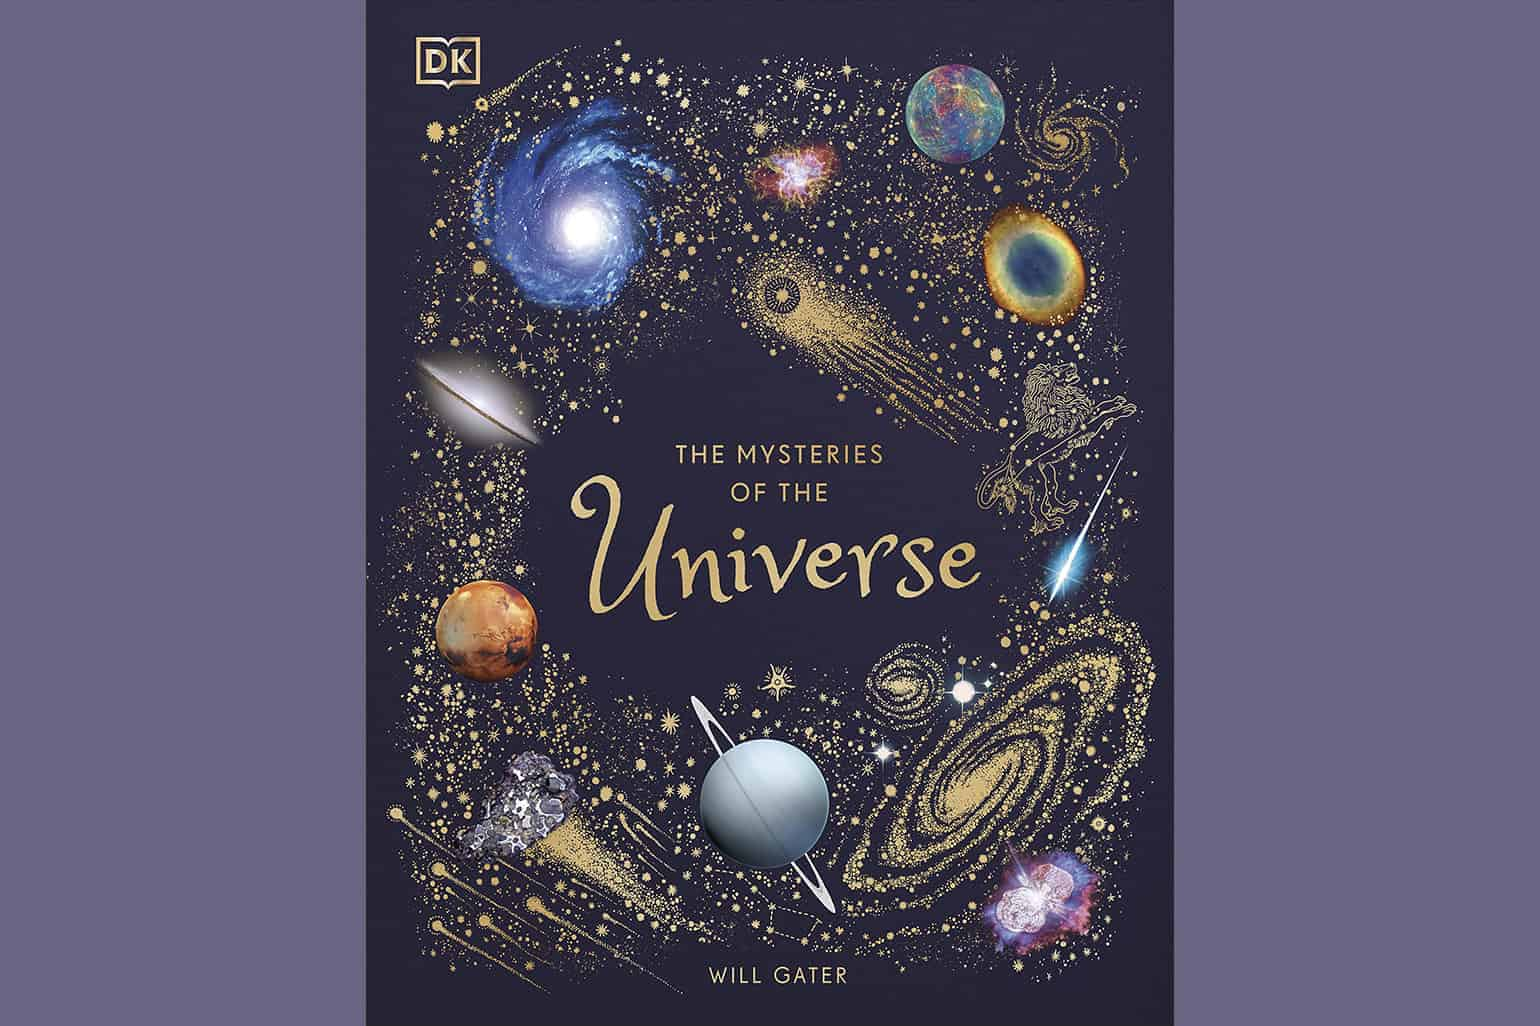 The Mysteries Of The Universe Discover The Best Kept Secrets Of Space By Will Gater